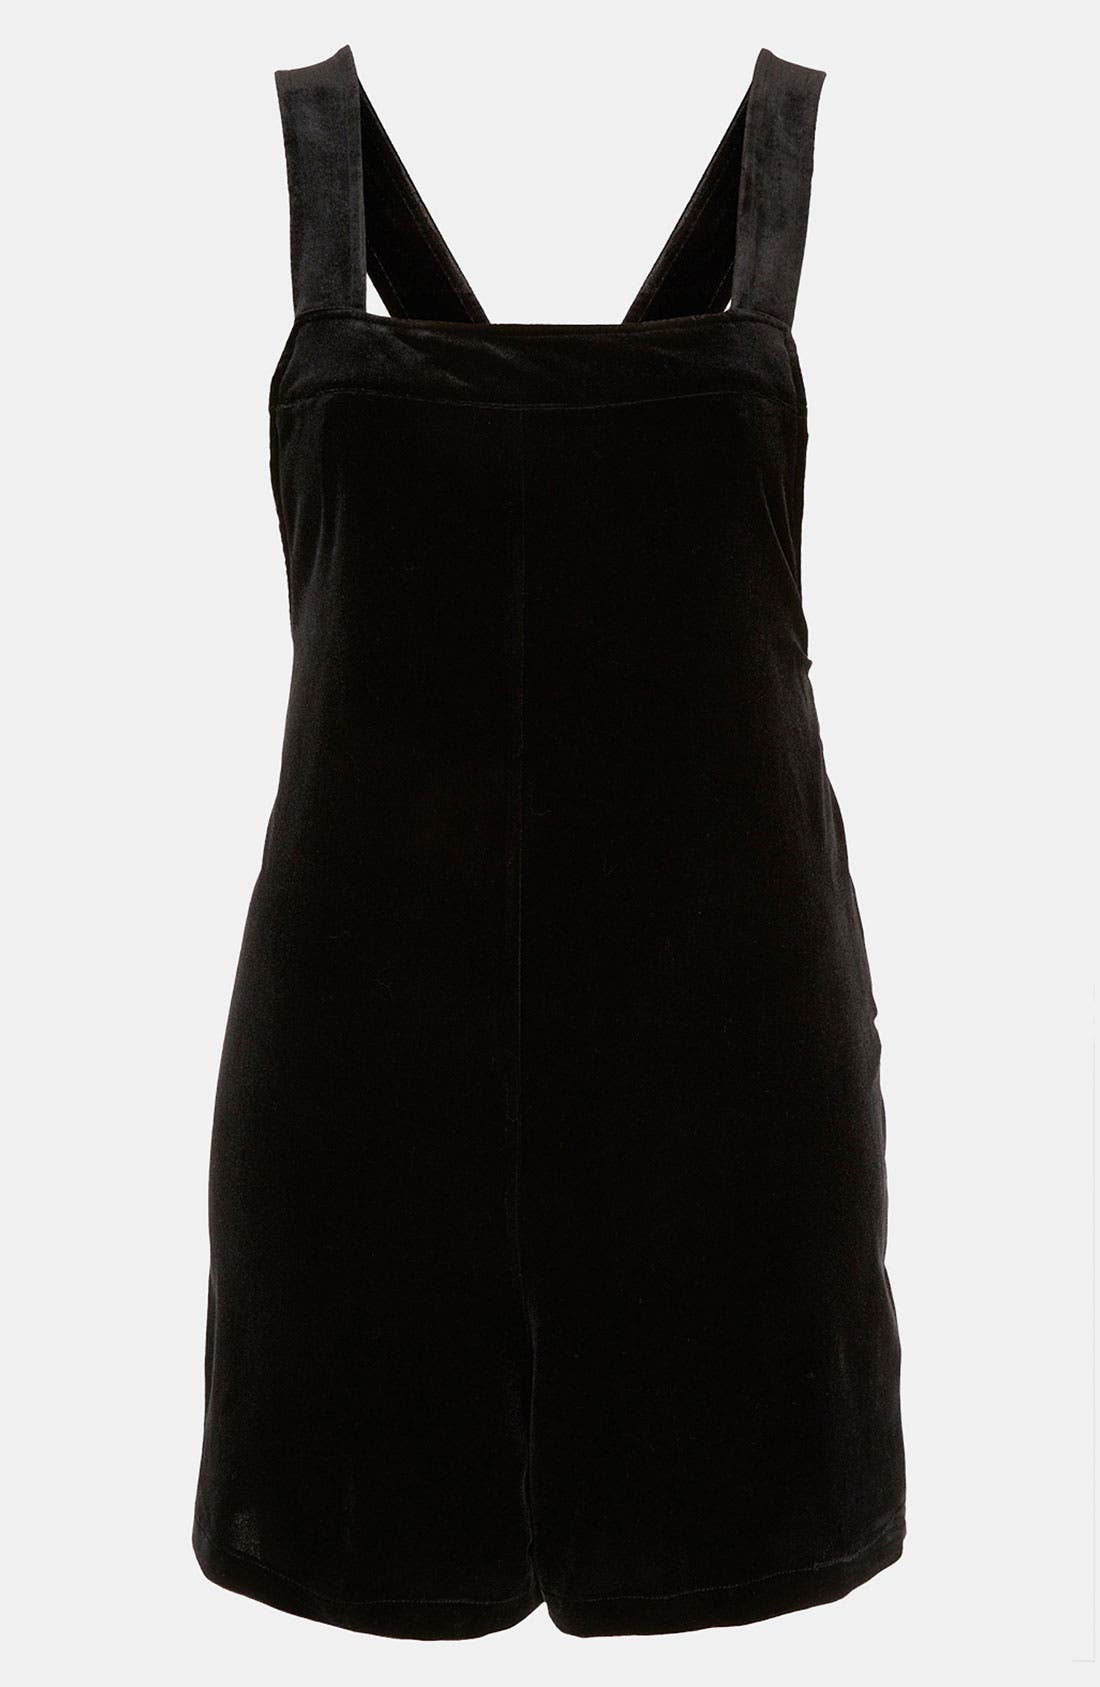 Alternate Image 1 Selected - Topshop Velvet Overall Romper